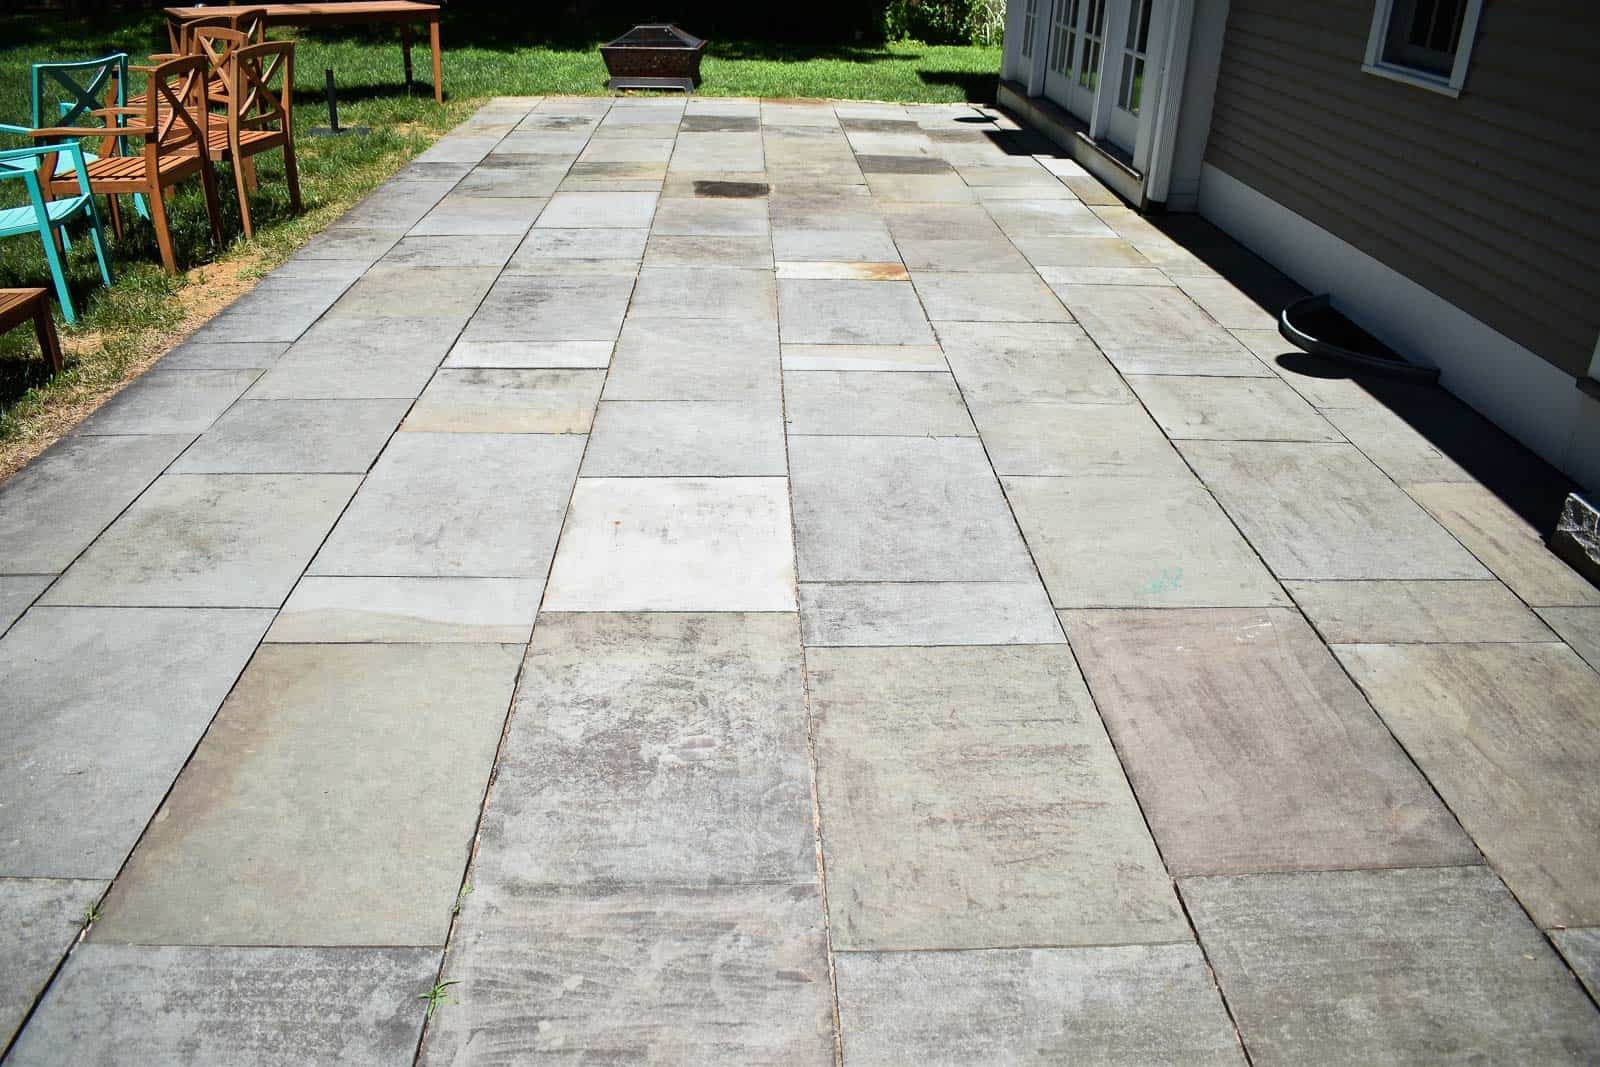 stone patio before pressure washing